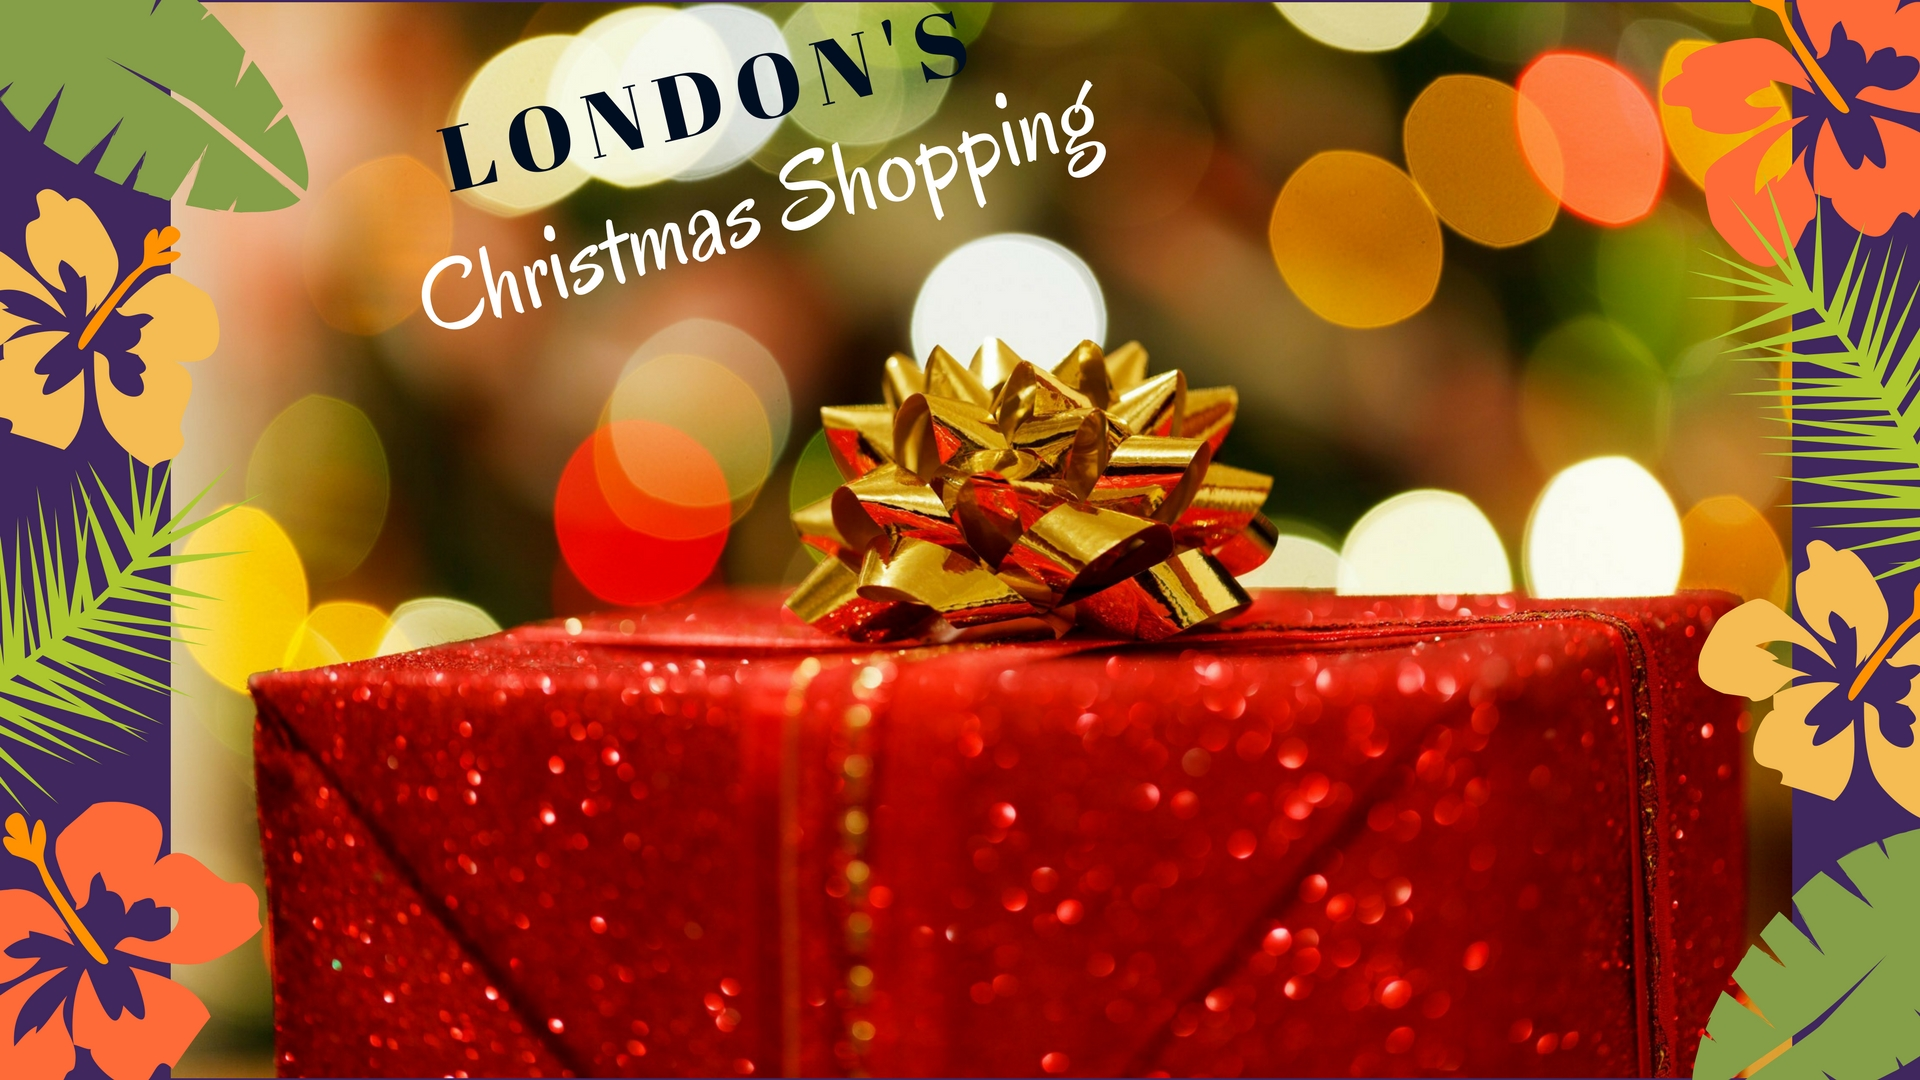 London's Christmas Shopping